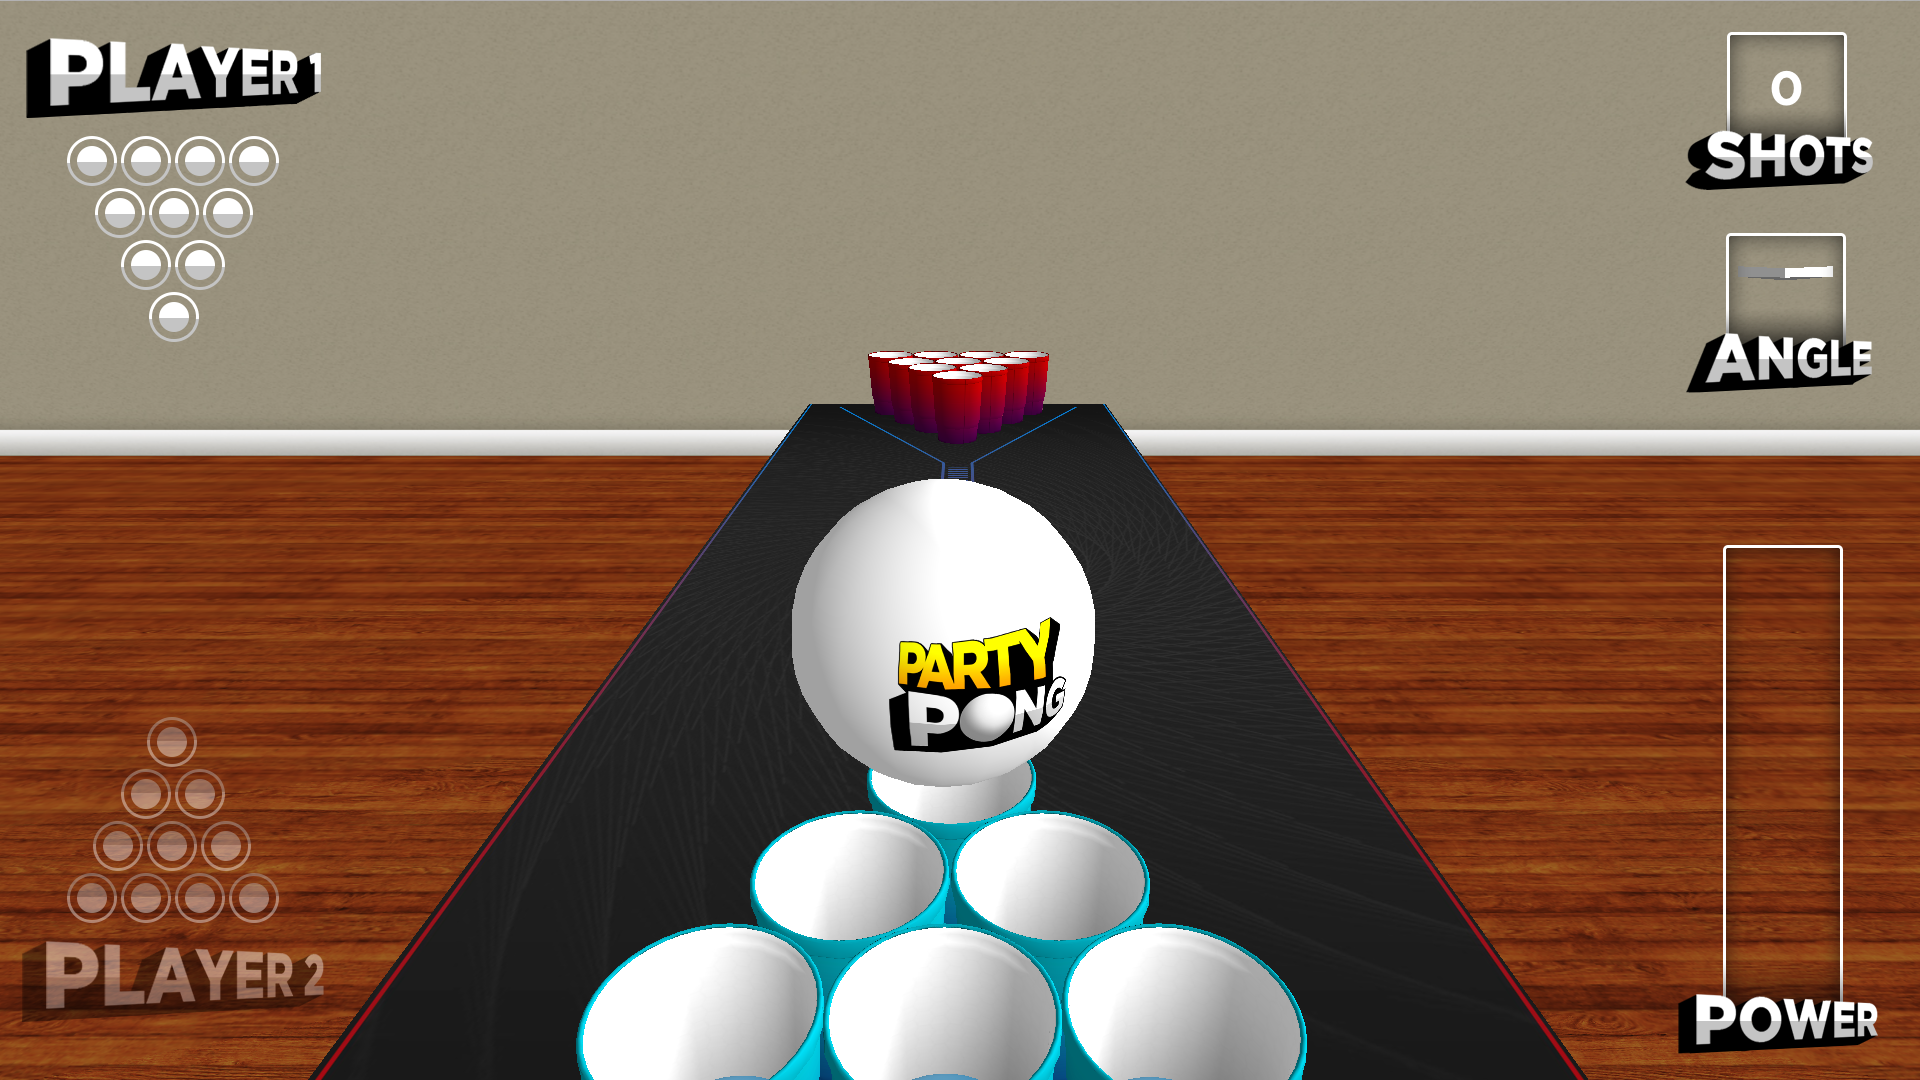 Party Pong - On The Big Screen screenshot 4